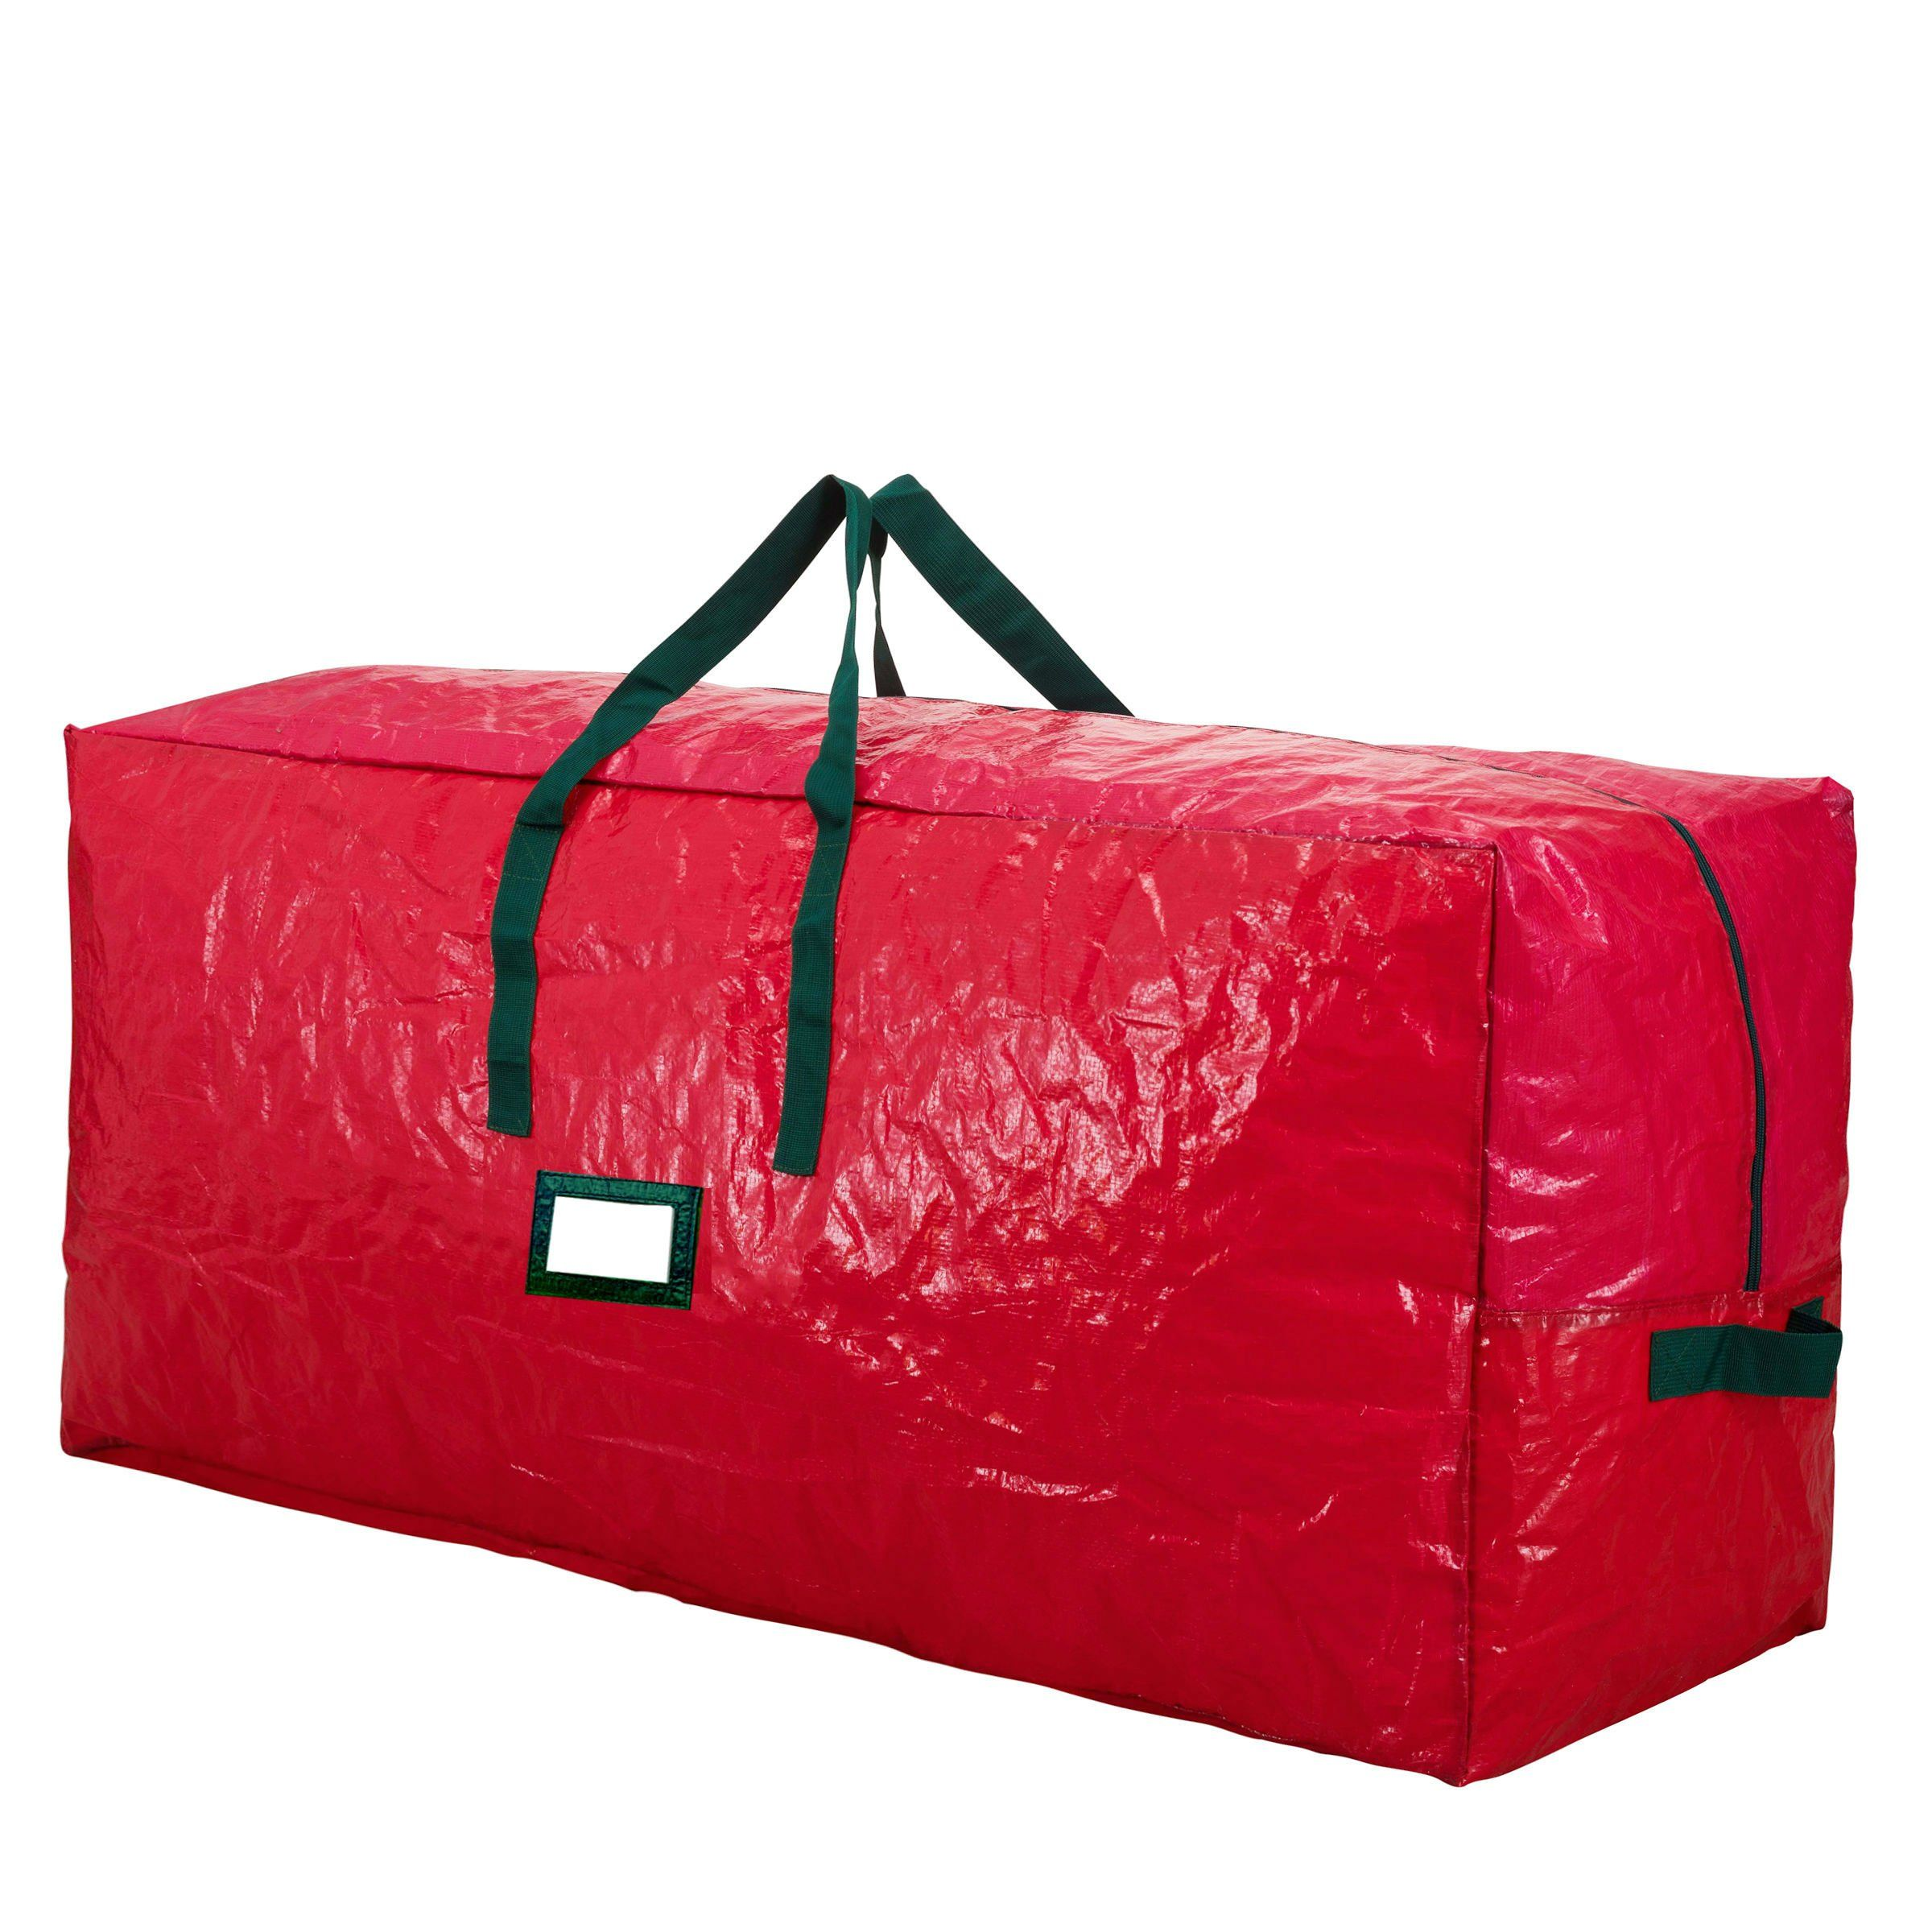 Premium Red Extra Large Holiday Christmas Tree Storage Bagfits Trees Up To 9 Feet Talltear R Tree Storage Bag Christmas Tree Storage Bag Christmas Tree Storage